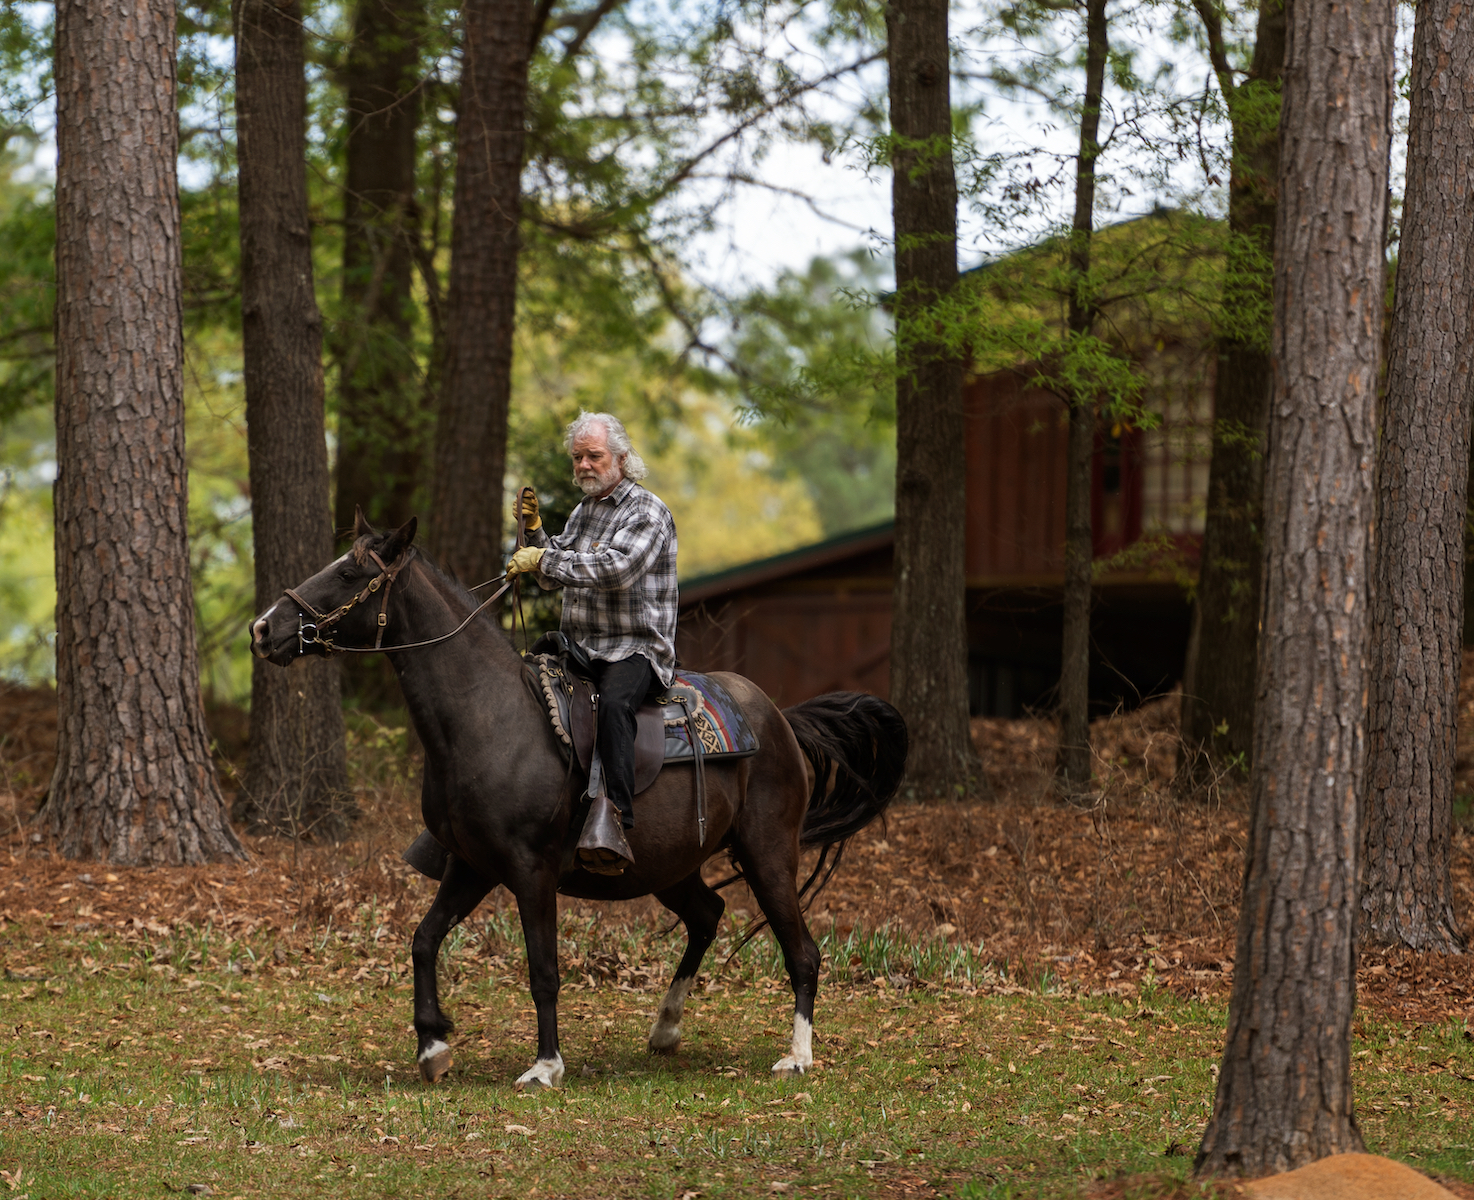 Chuck Leavell riding horse through wooded area.